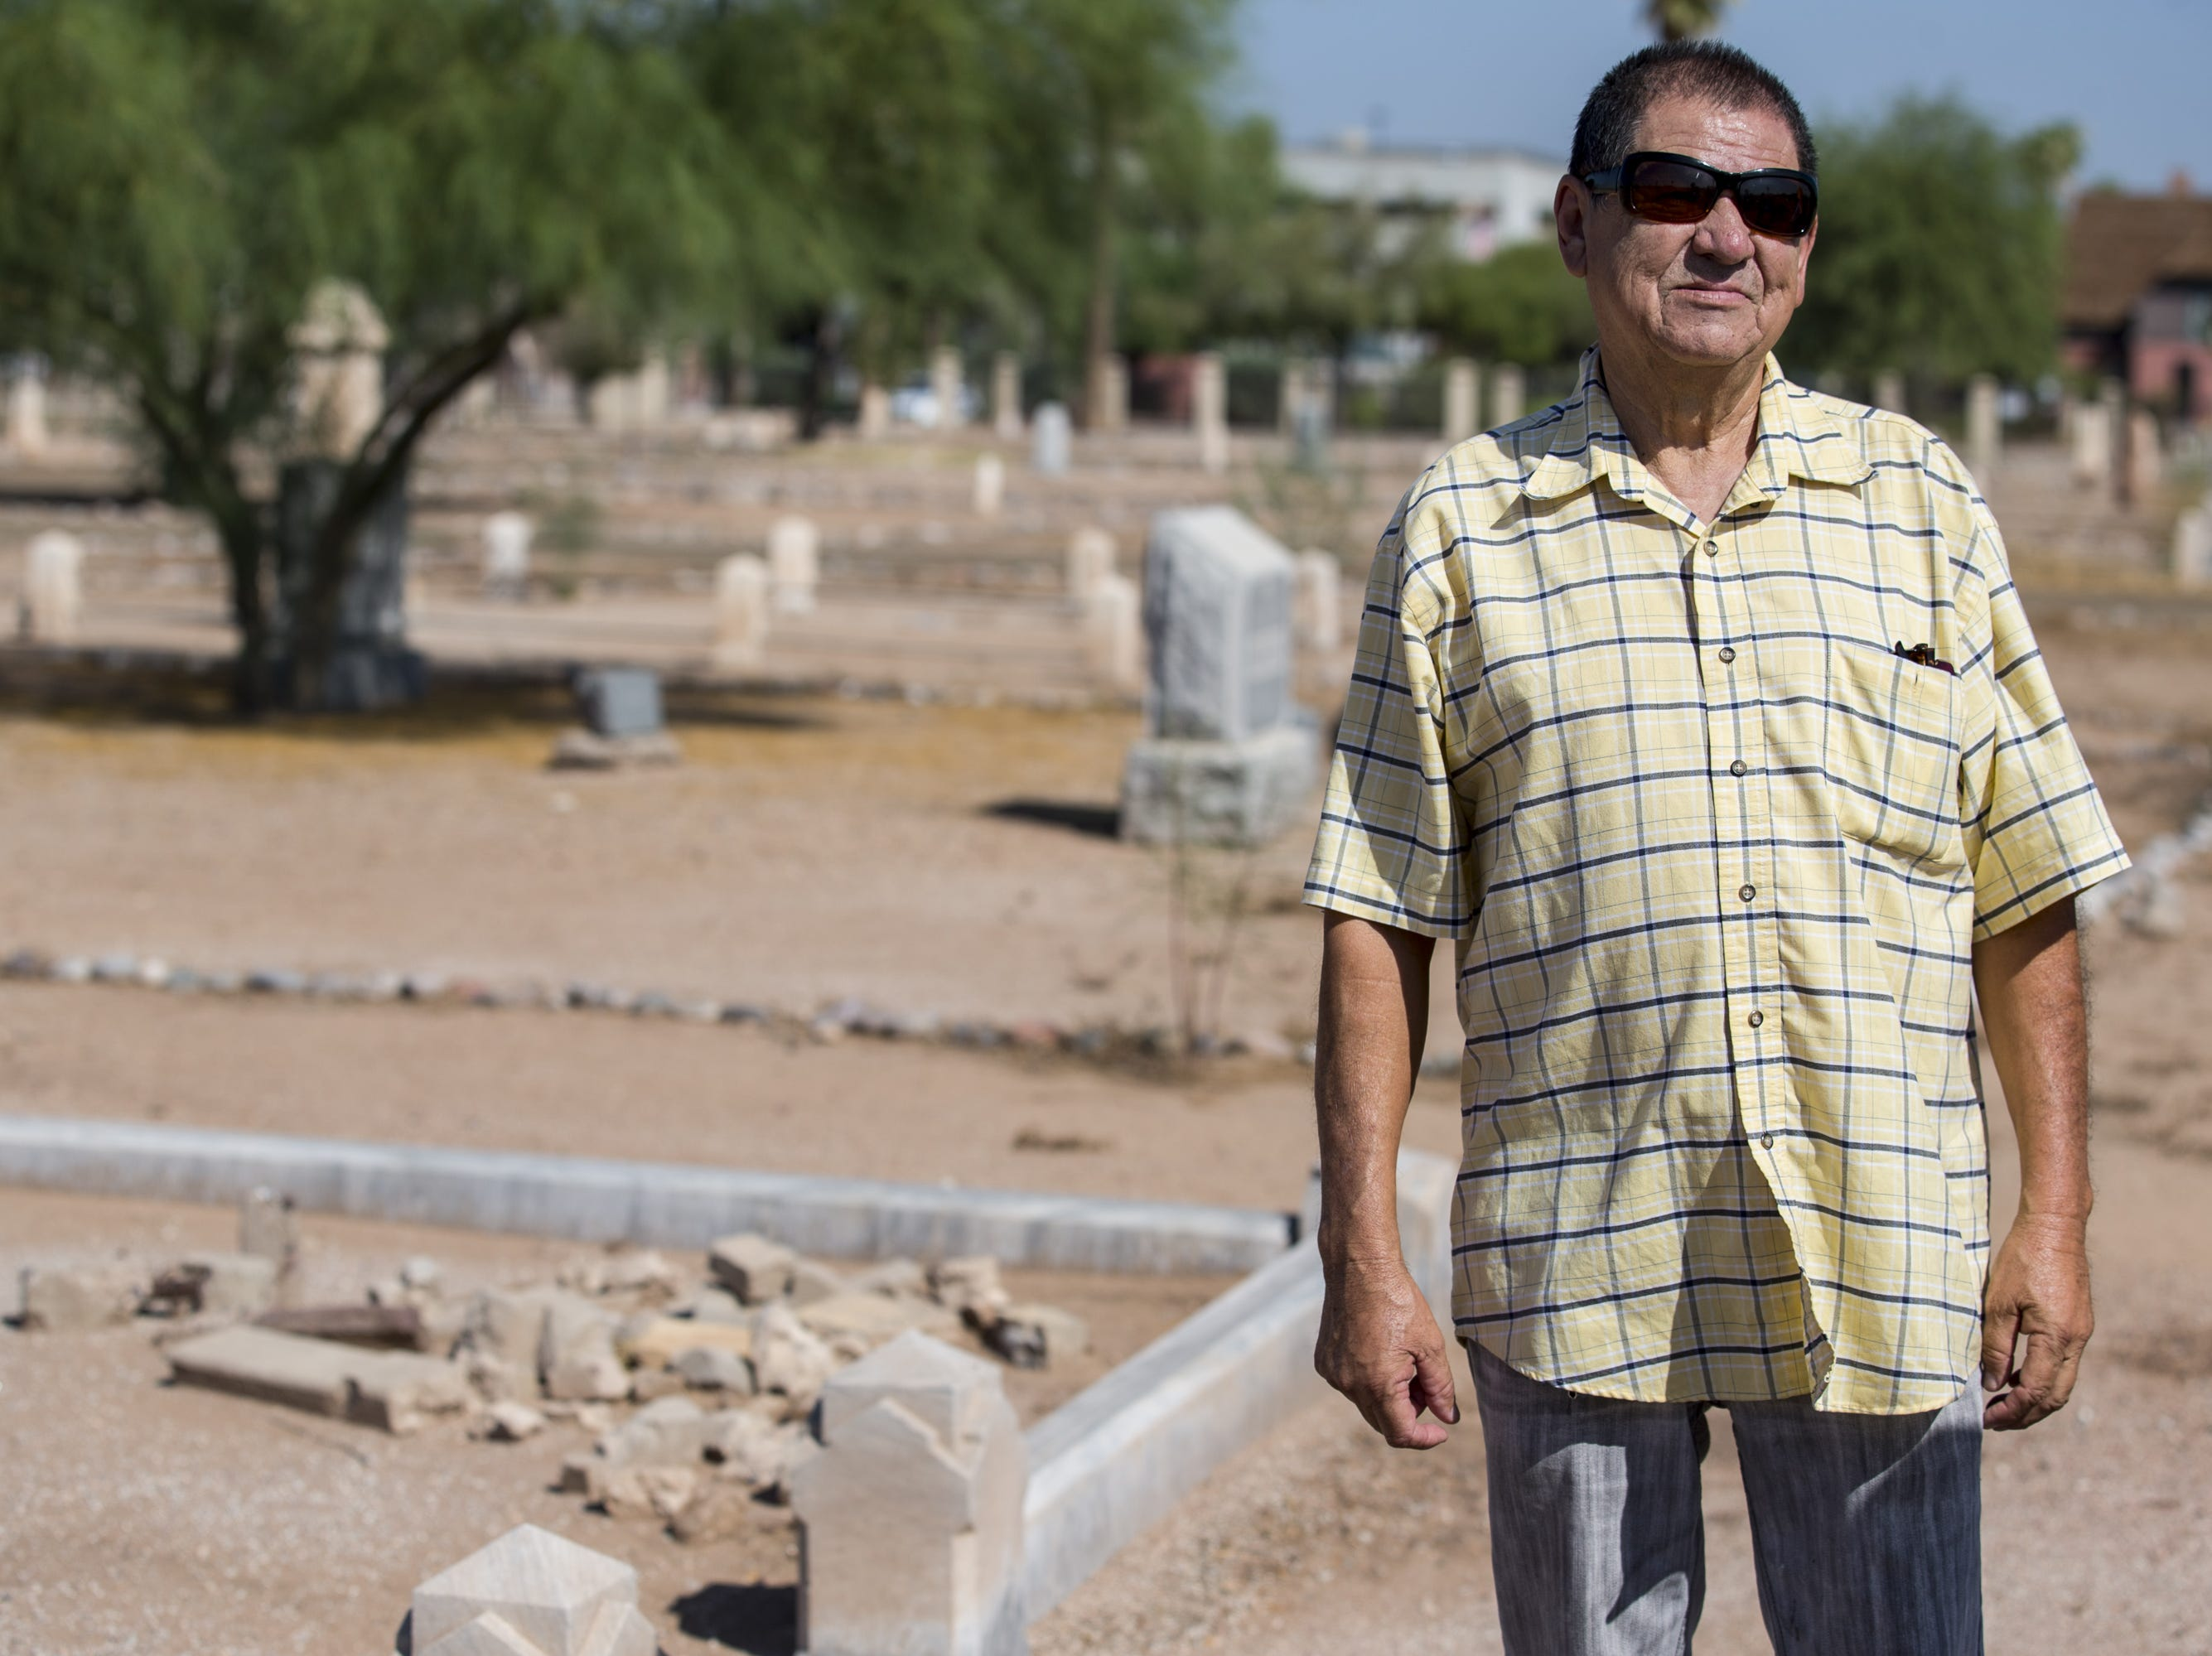 Jose Villela is pictured Sept. 20, 2018, at Pioneer & Military Memorial Park in Phoenix. Some of the headstones from the historic Sotelo-Heard Cemetery have been moved to their current location to prevent vandalization.